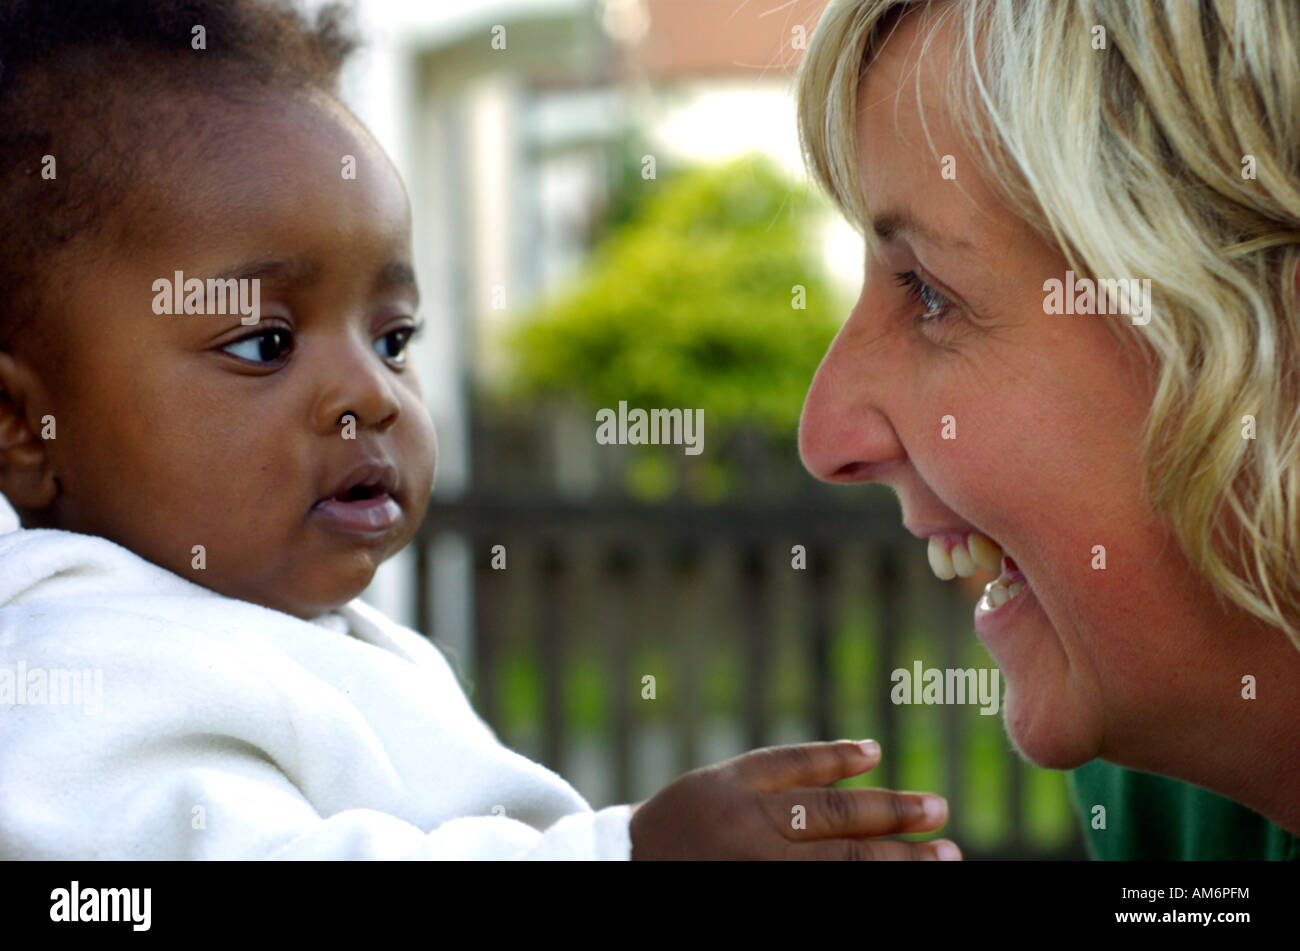 A woman has fun with a baby - Stock Image